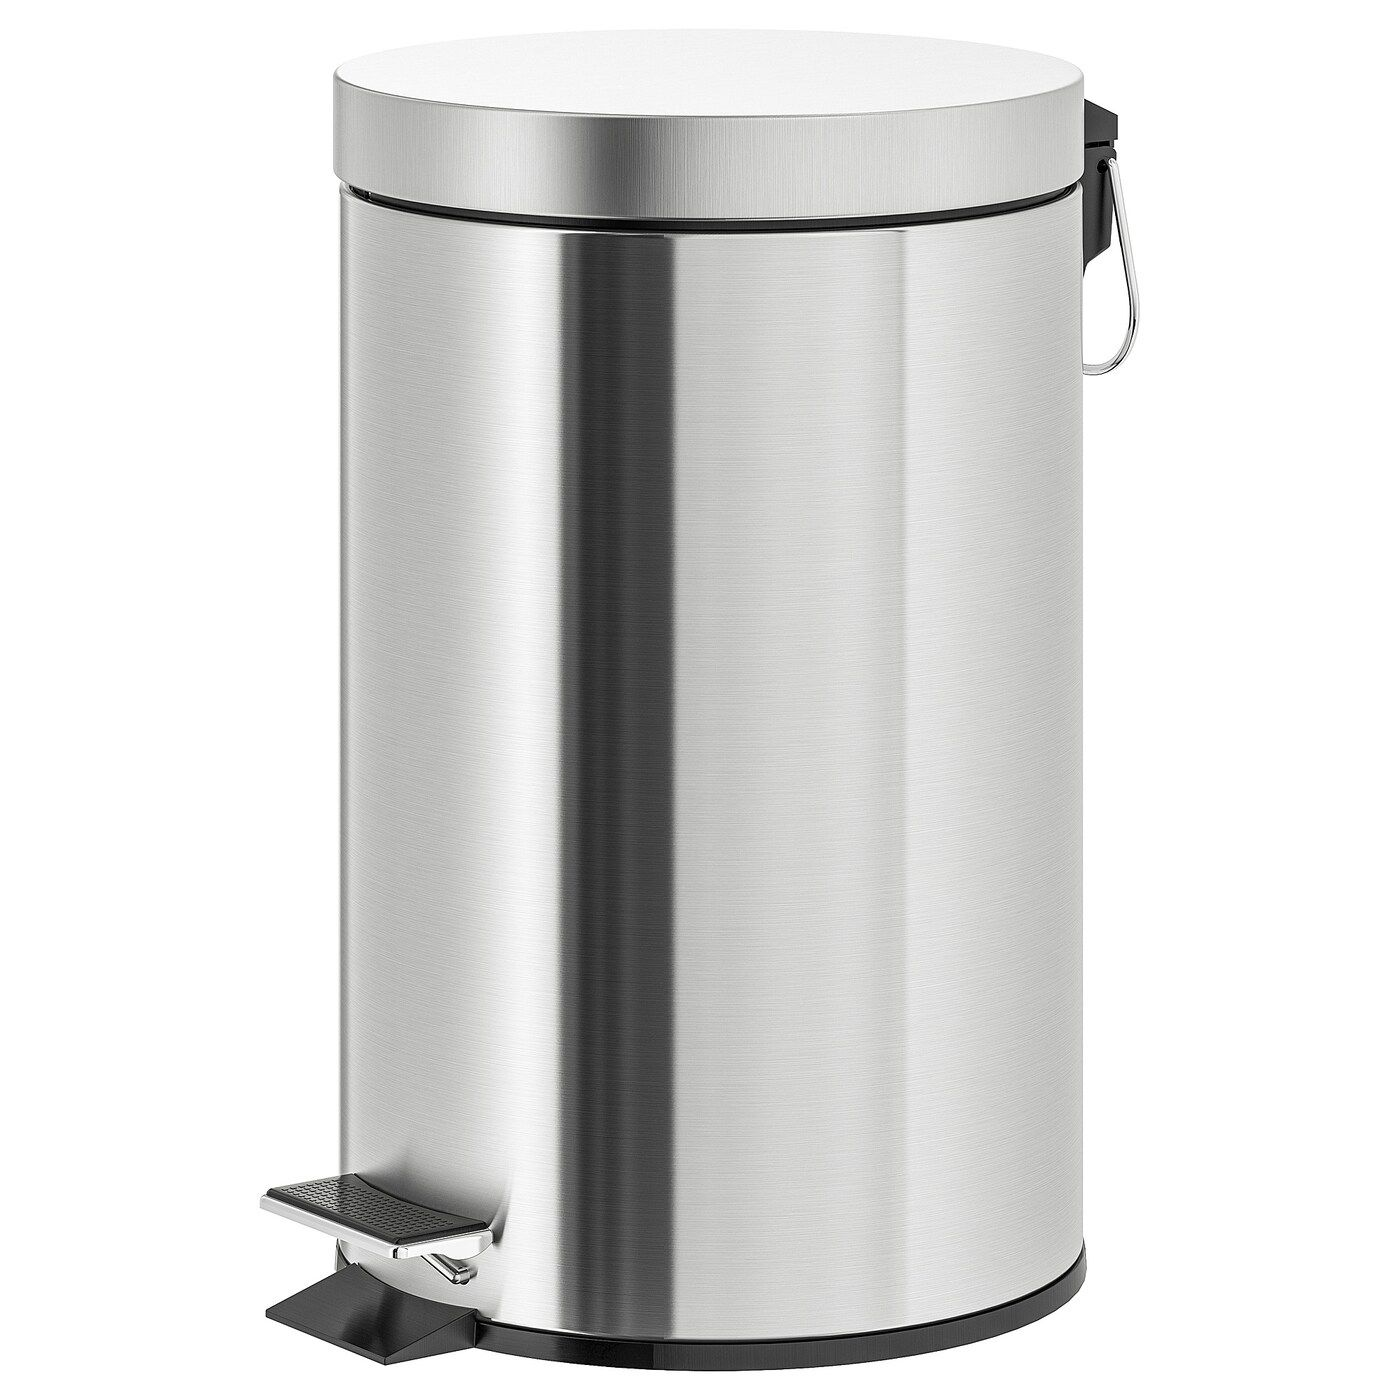 Strapats Pedal Bin Stainless Steel Ikea Ikea Wash Basin Accessories Bathroom Trash Can